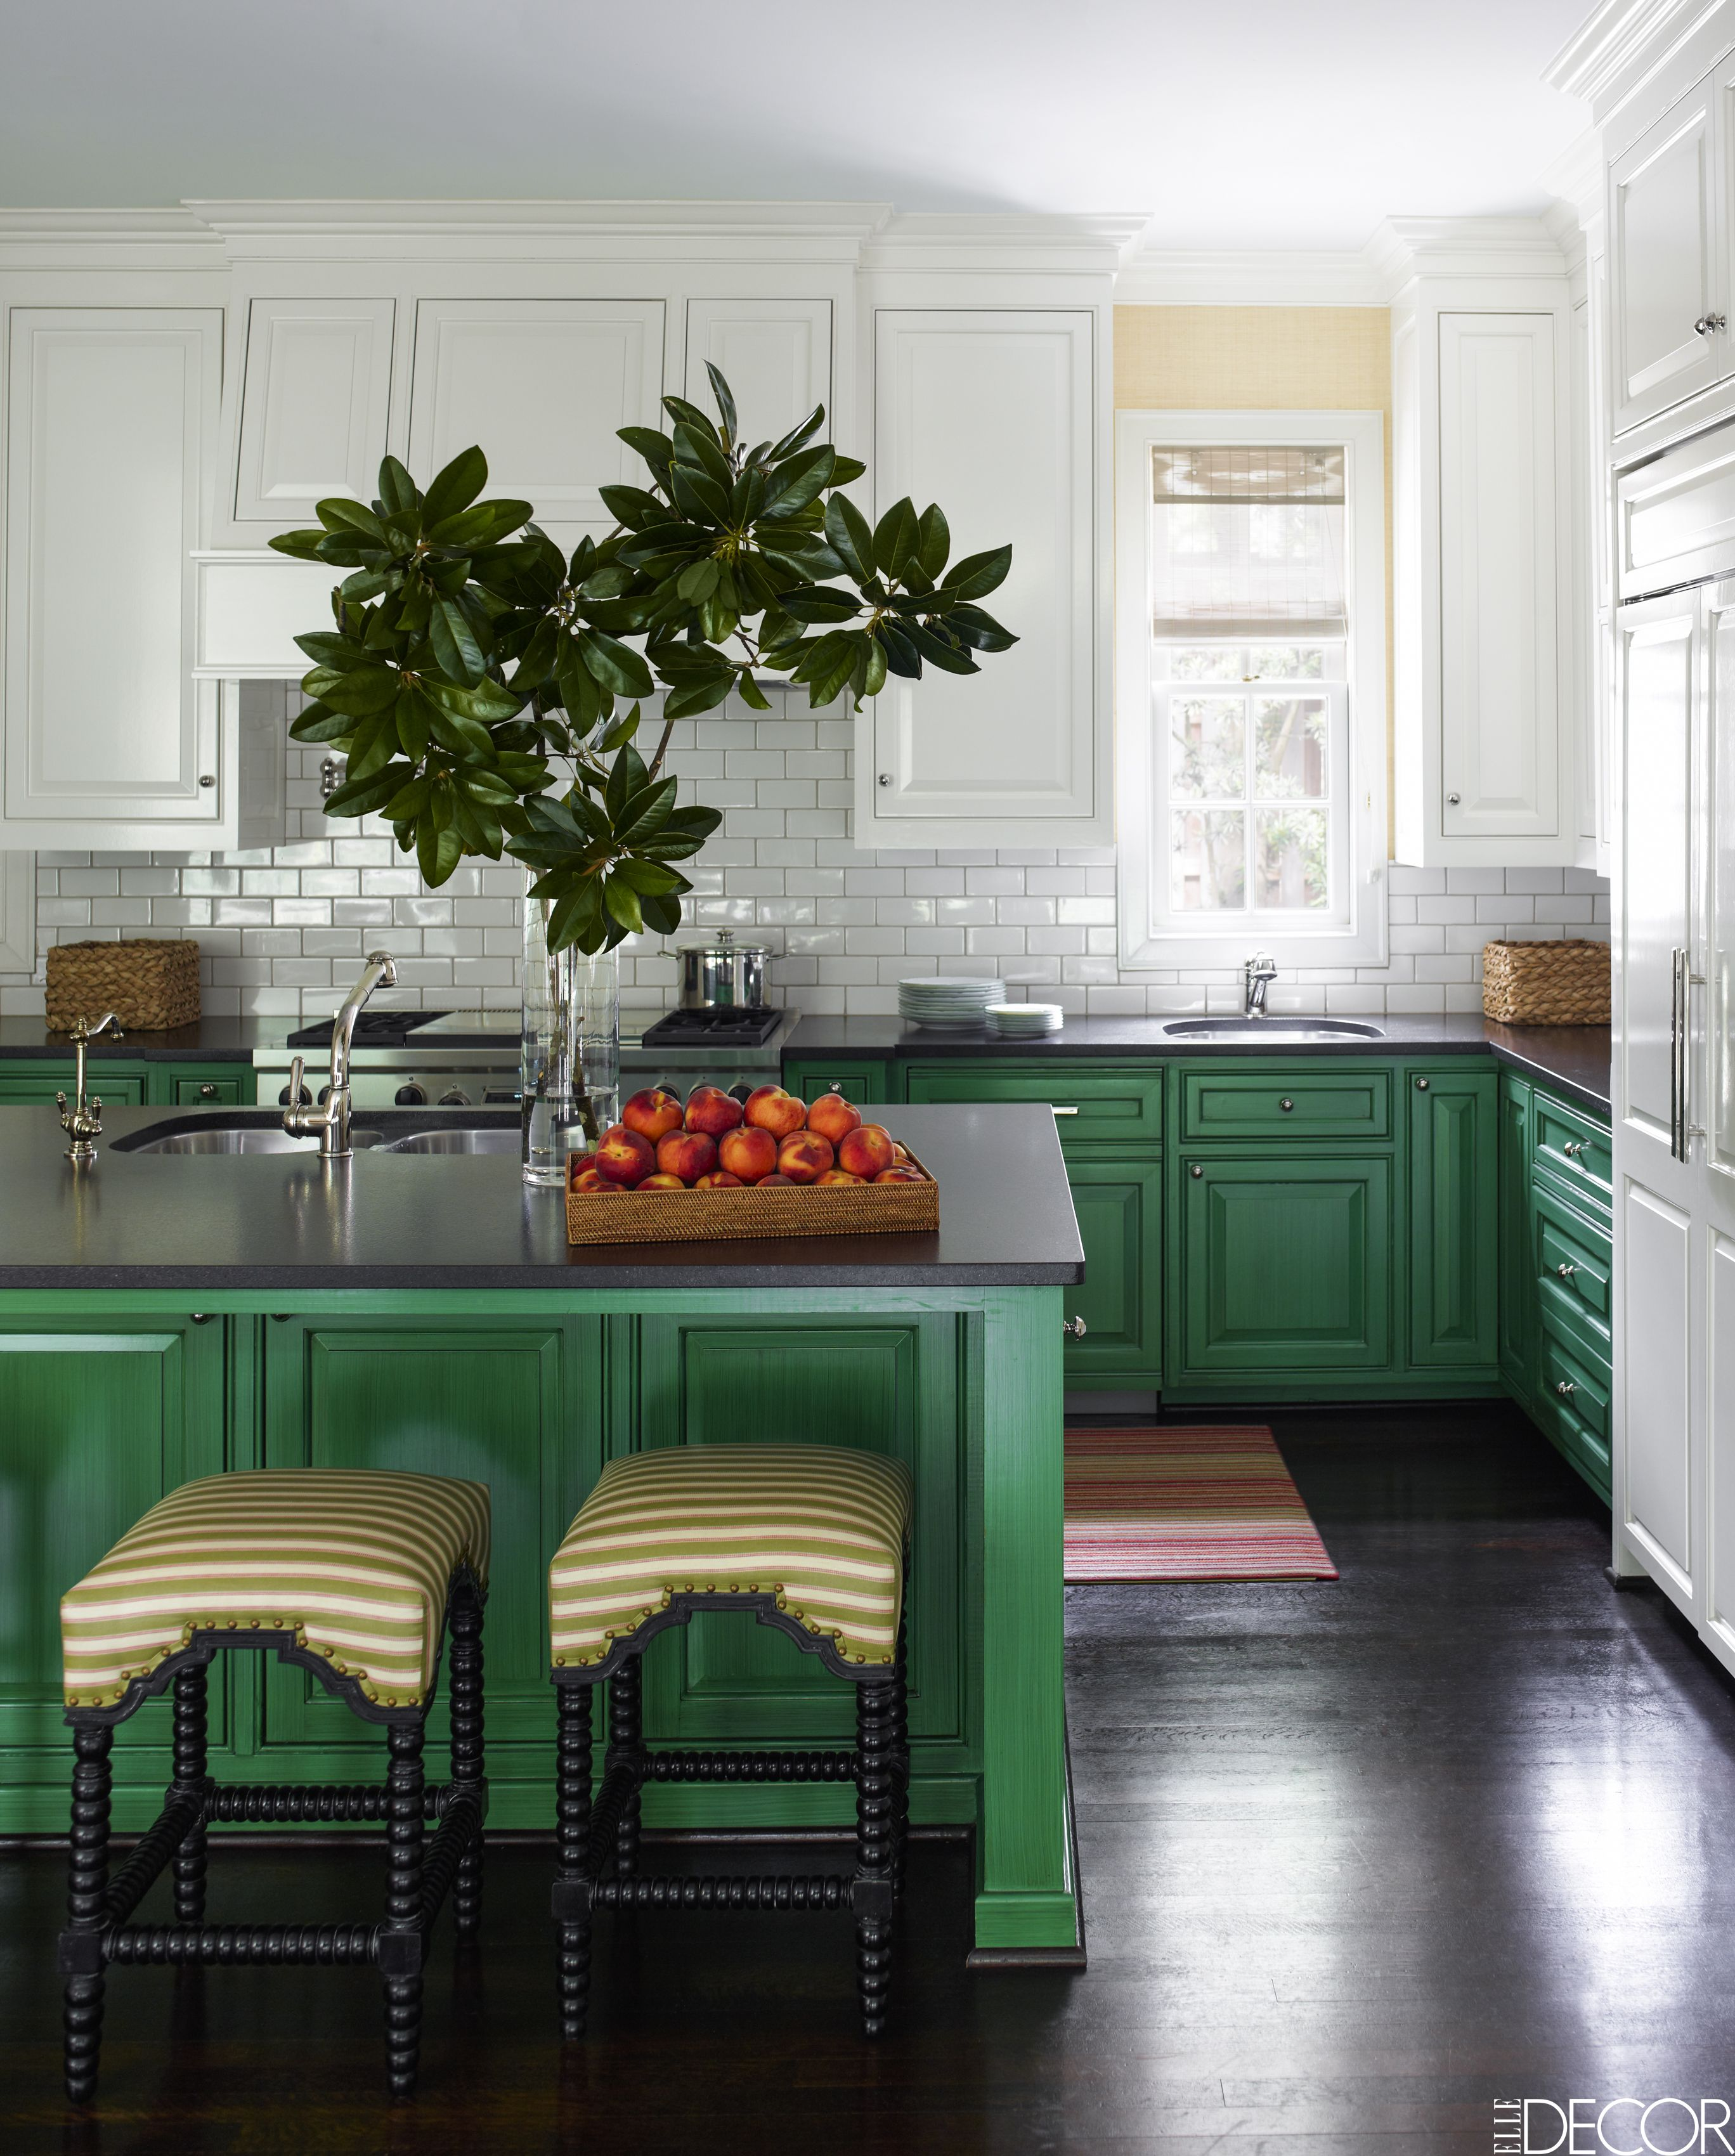 Sage kitchen cabinets houston - 10 Green Kitchens That Aren T Afraid To Stand Out